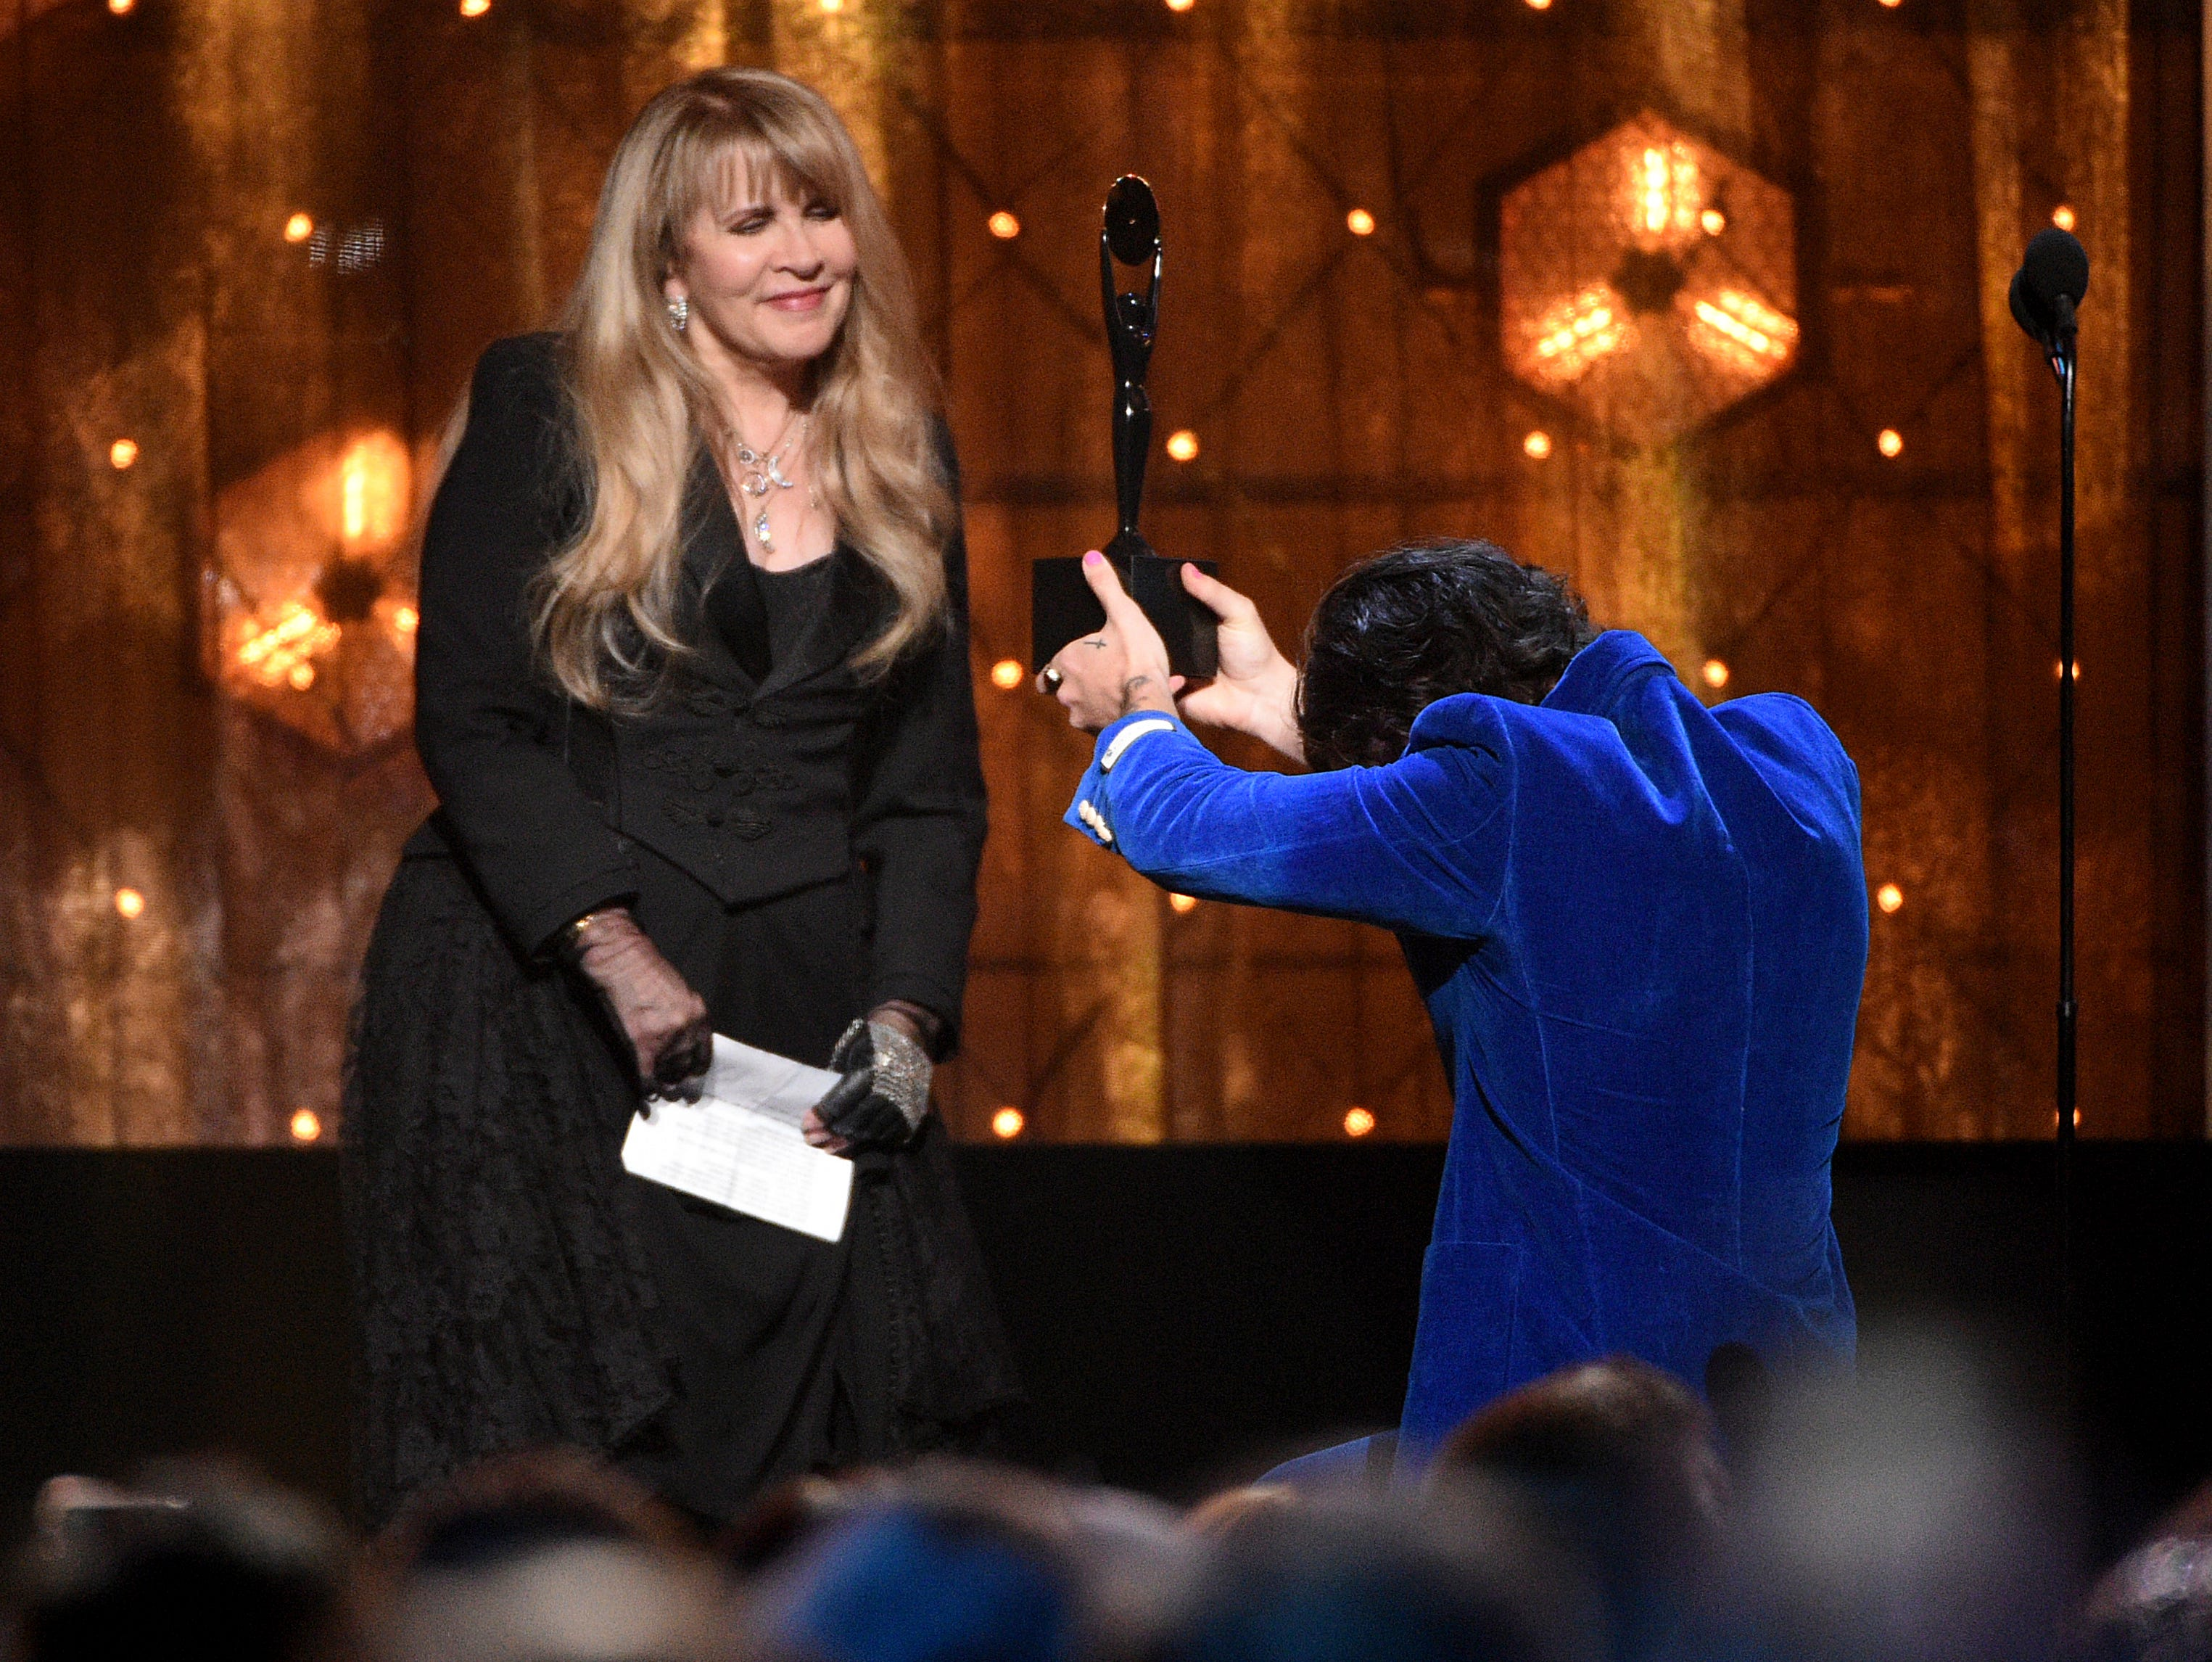 Harry Styles, right, presents a trophy to Stevie Nicks at the Rock & Roll Hall of Fame induction ceremony at the Barclays Center on Friday, March 29, 2019, in New York. (Photo by Evan Agostini/Invision/AP) ORG XMIT: NYPM150